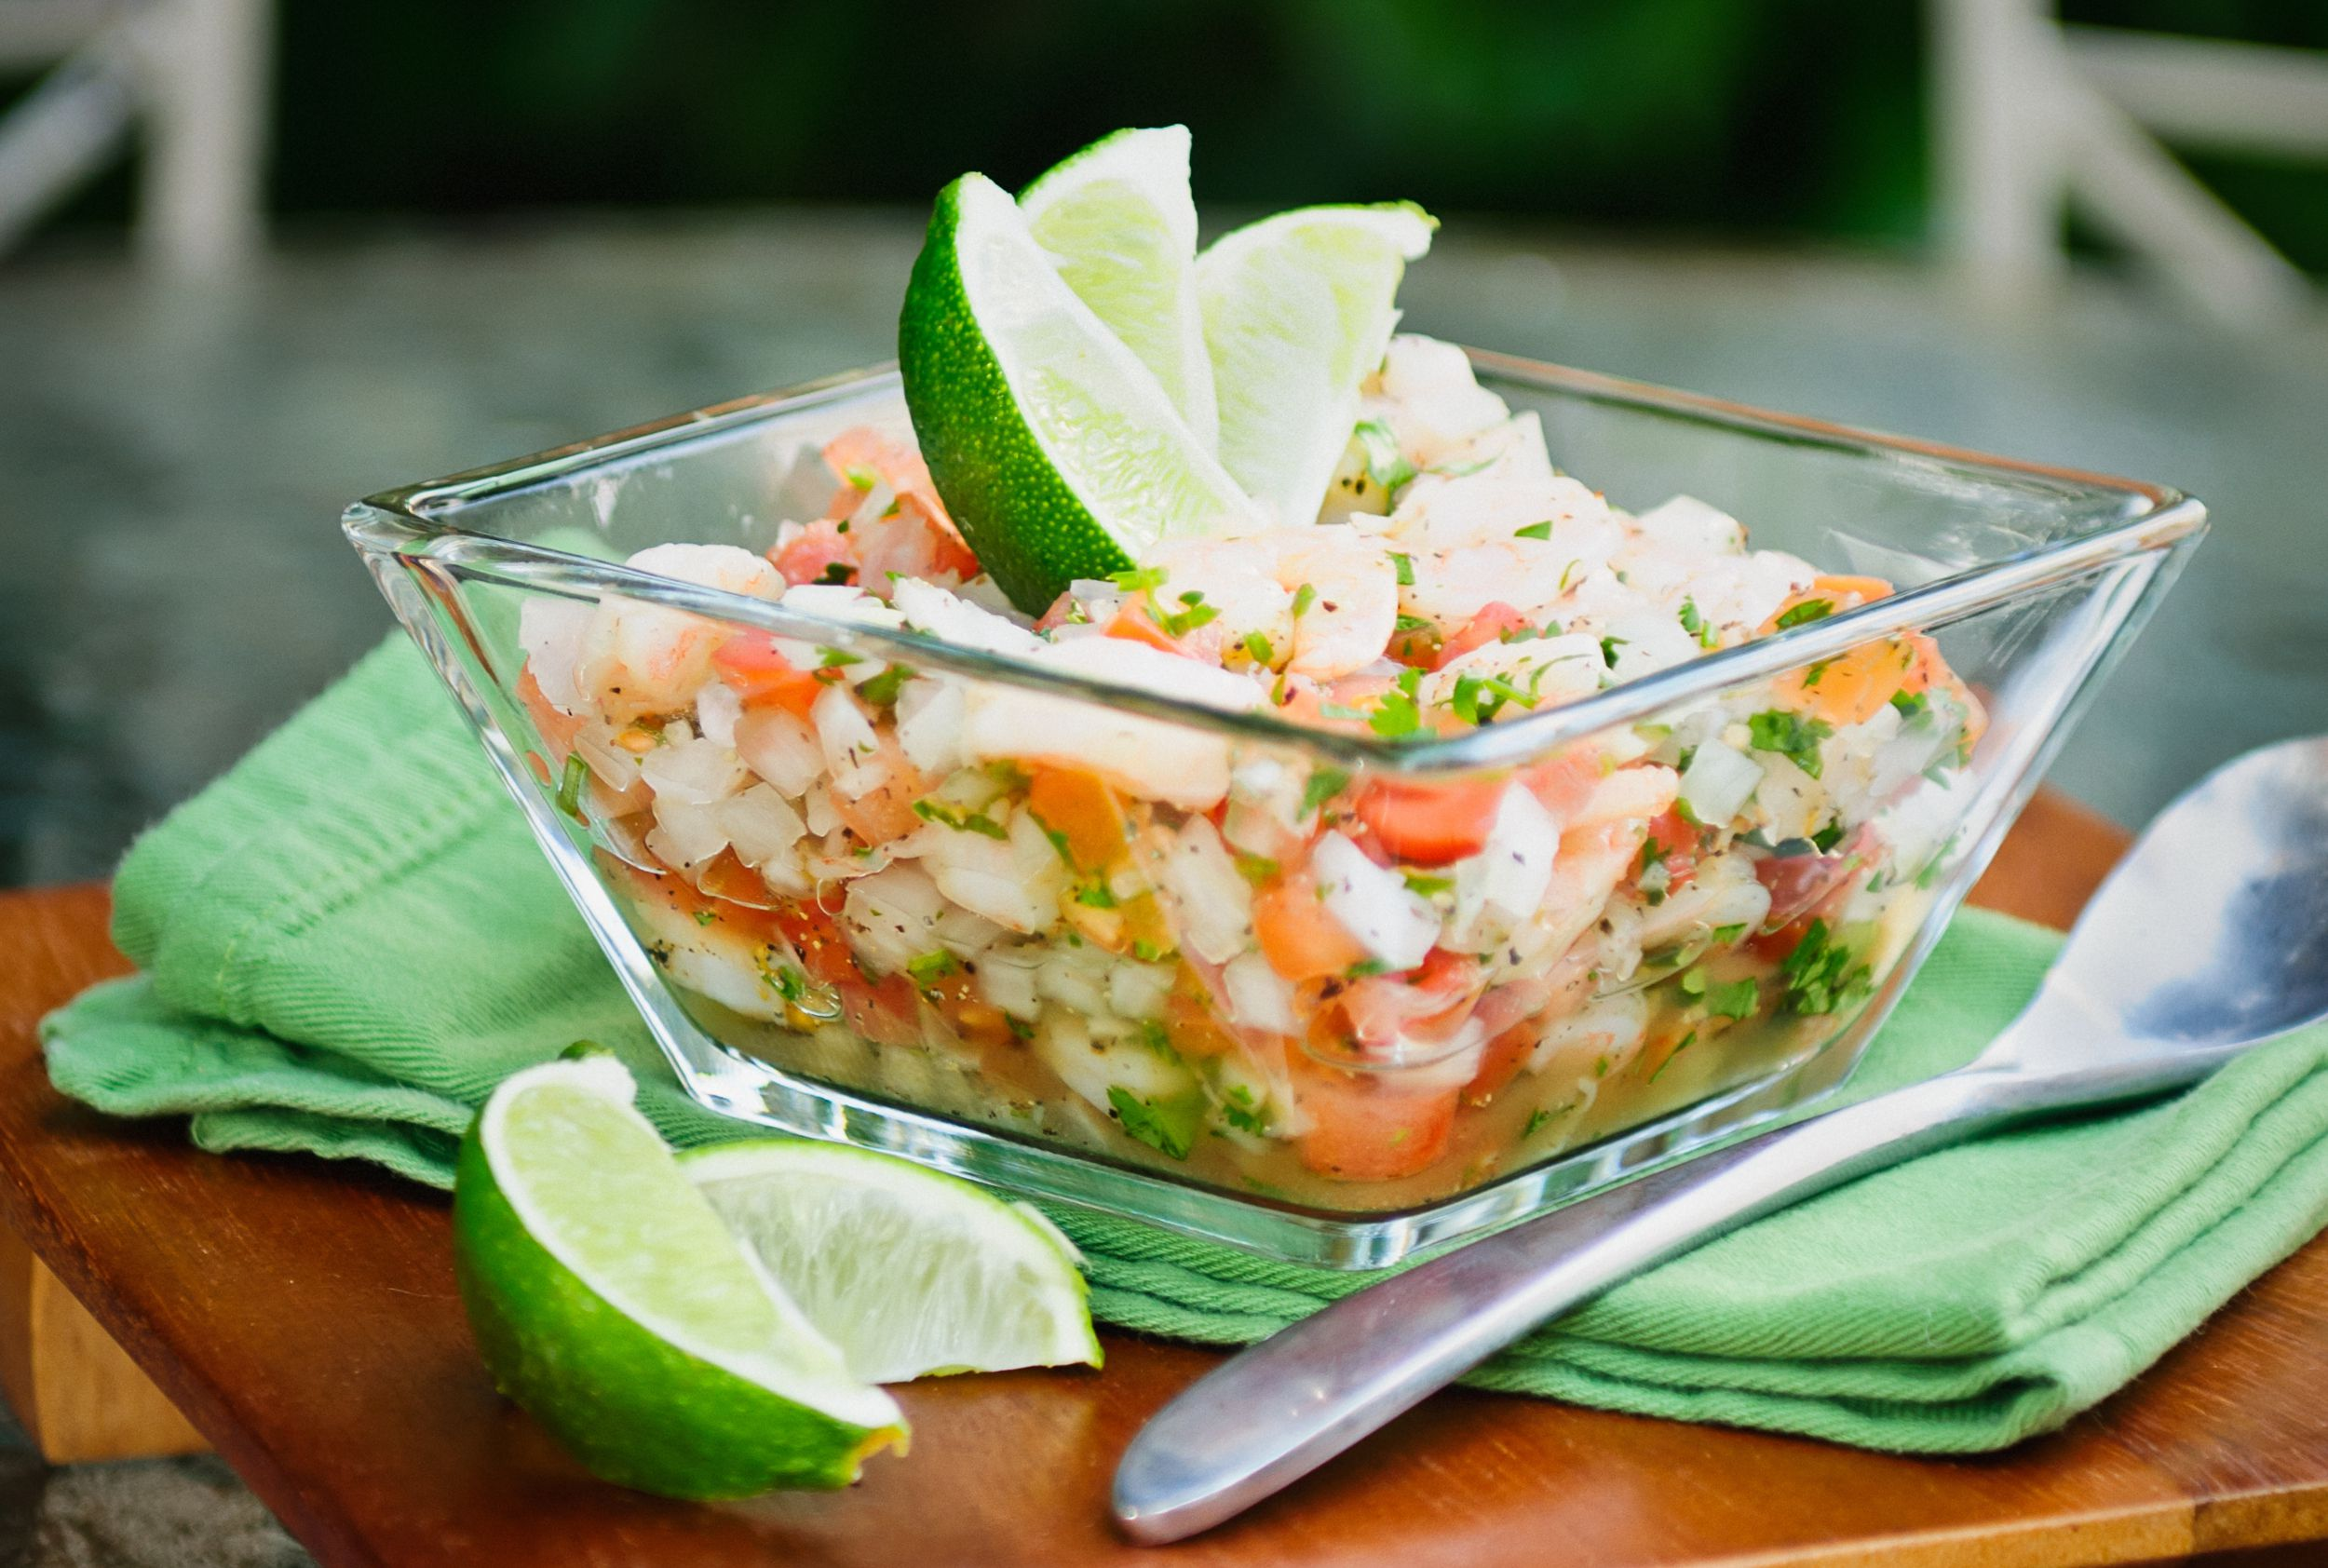 Ceviche is more than just raw fish for Shrimp and fish ceviche